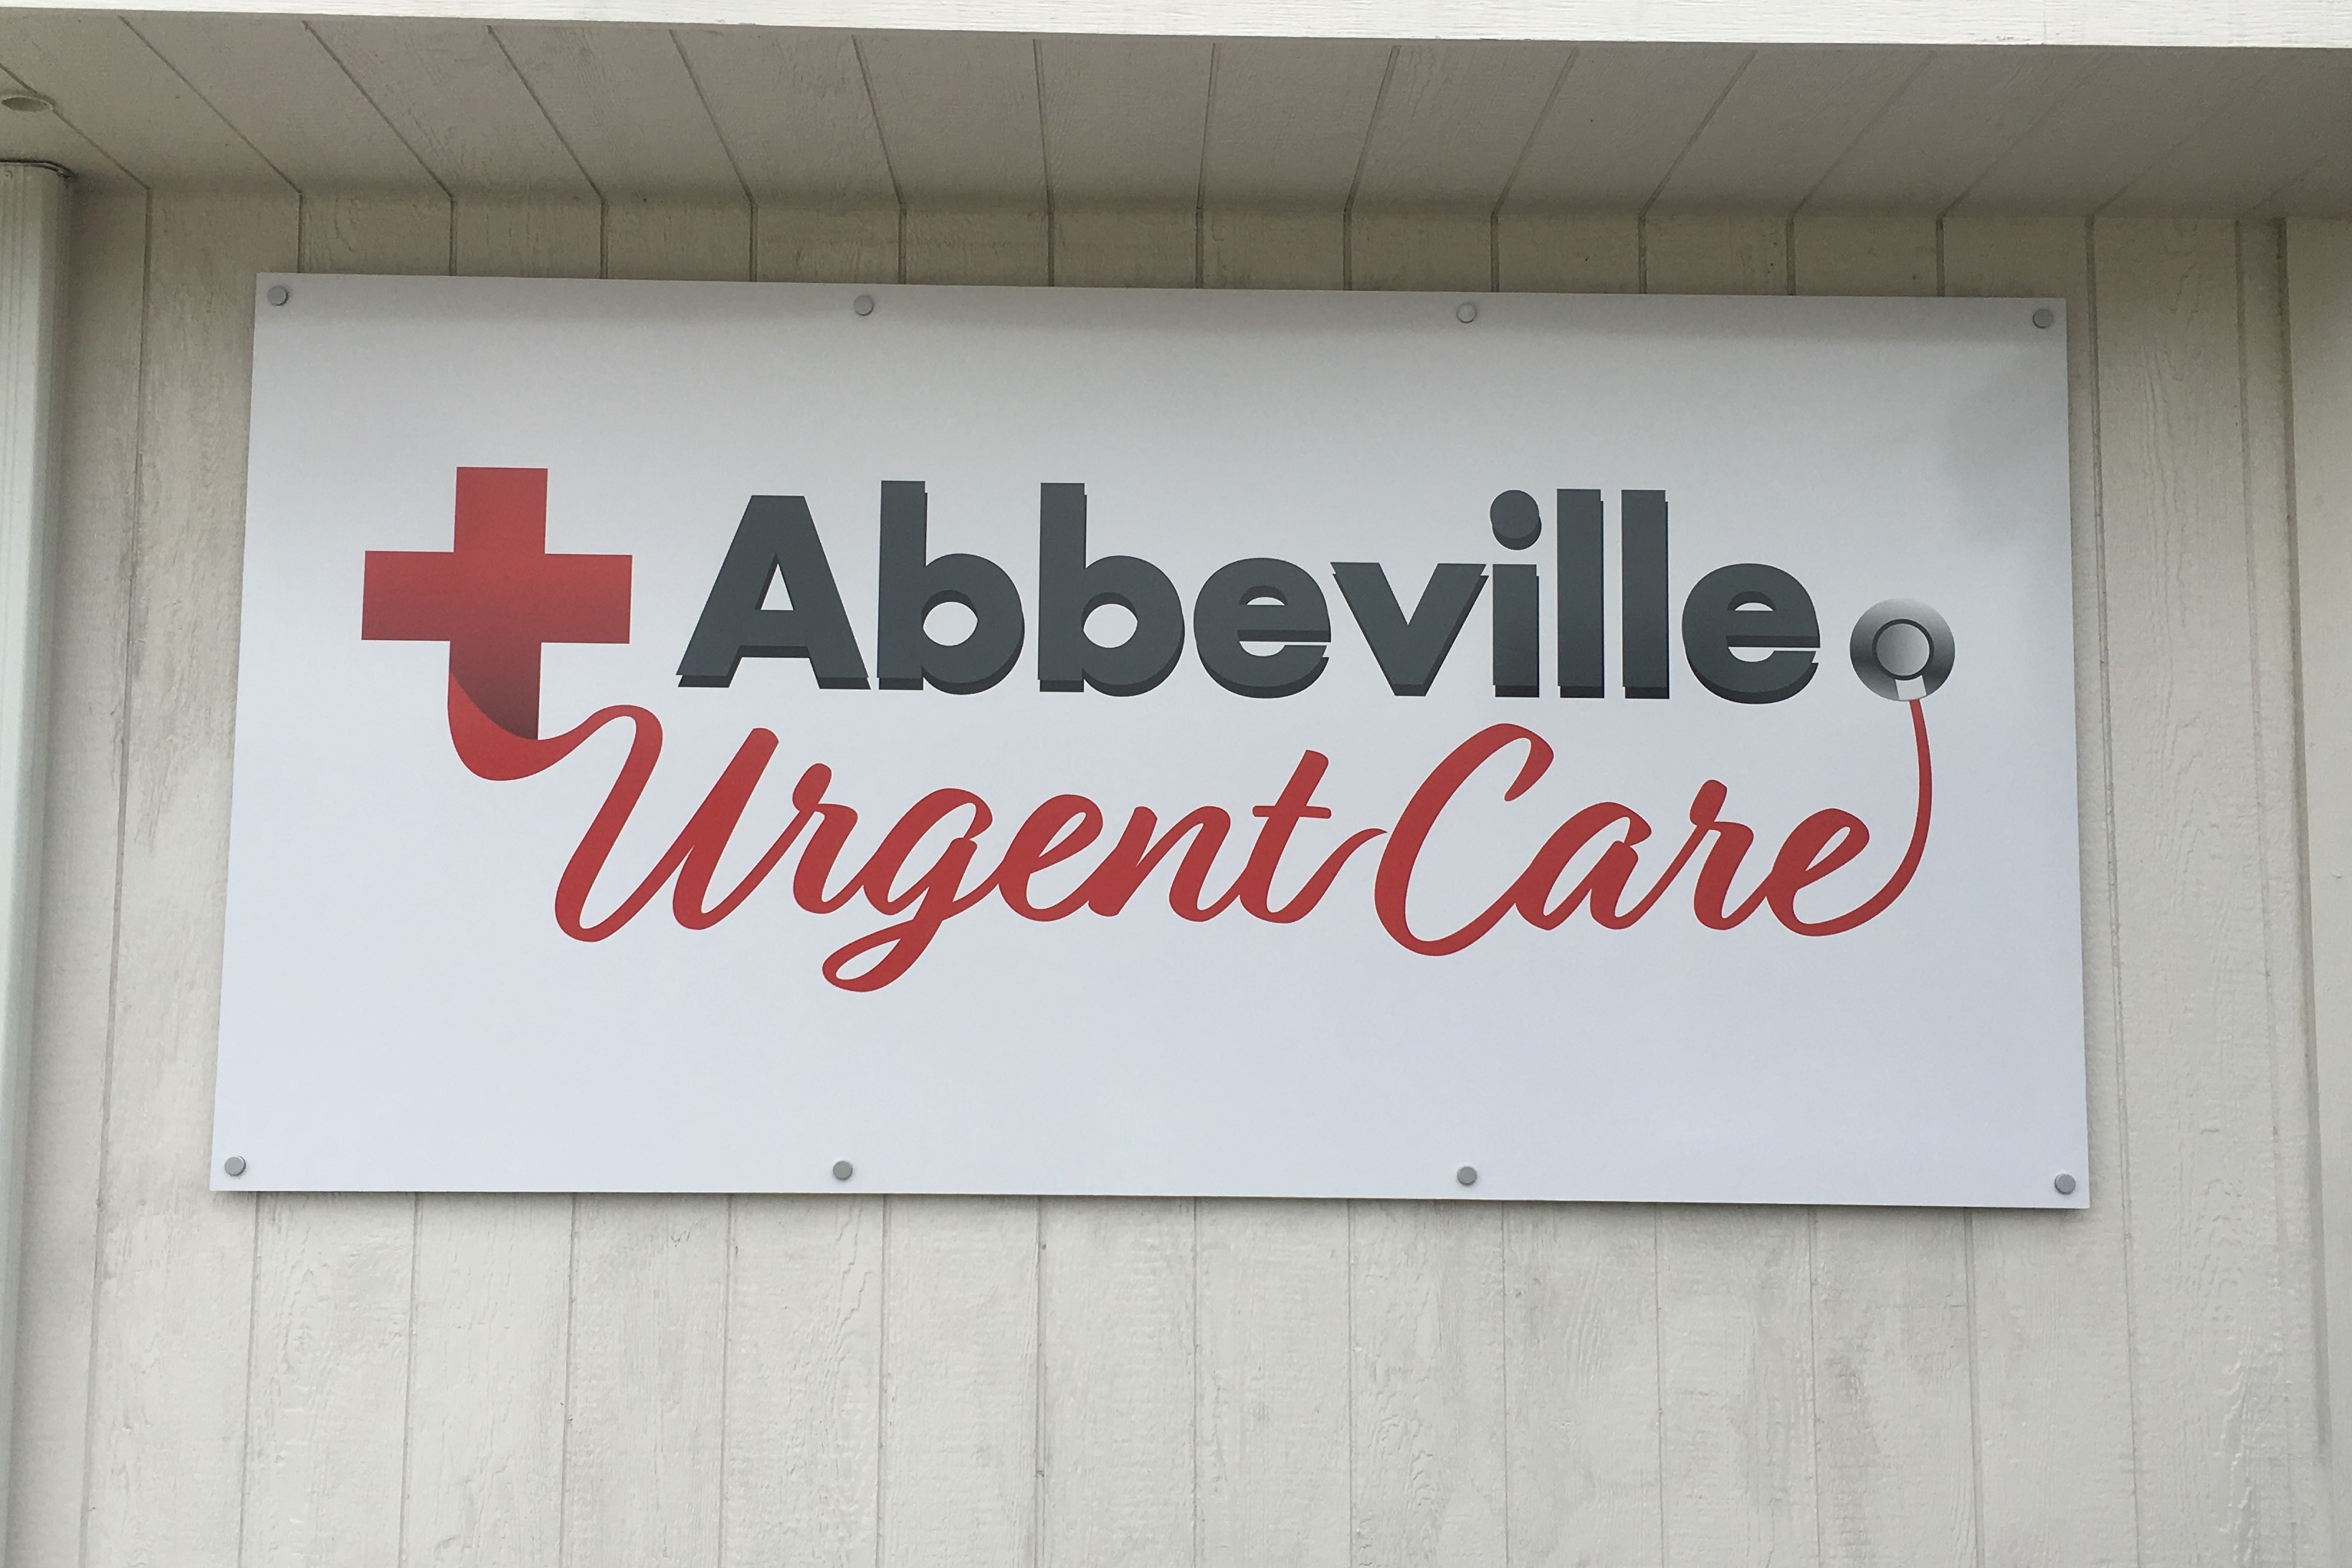 Abbeville Urgent Care Sign